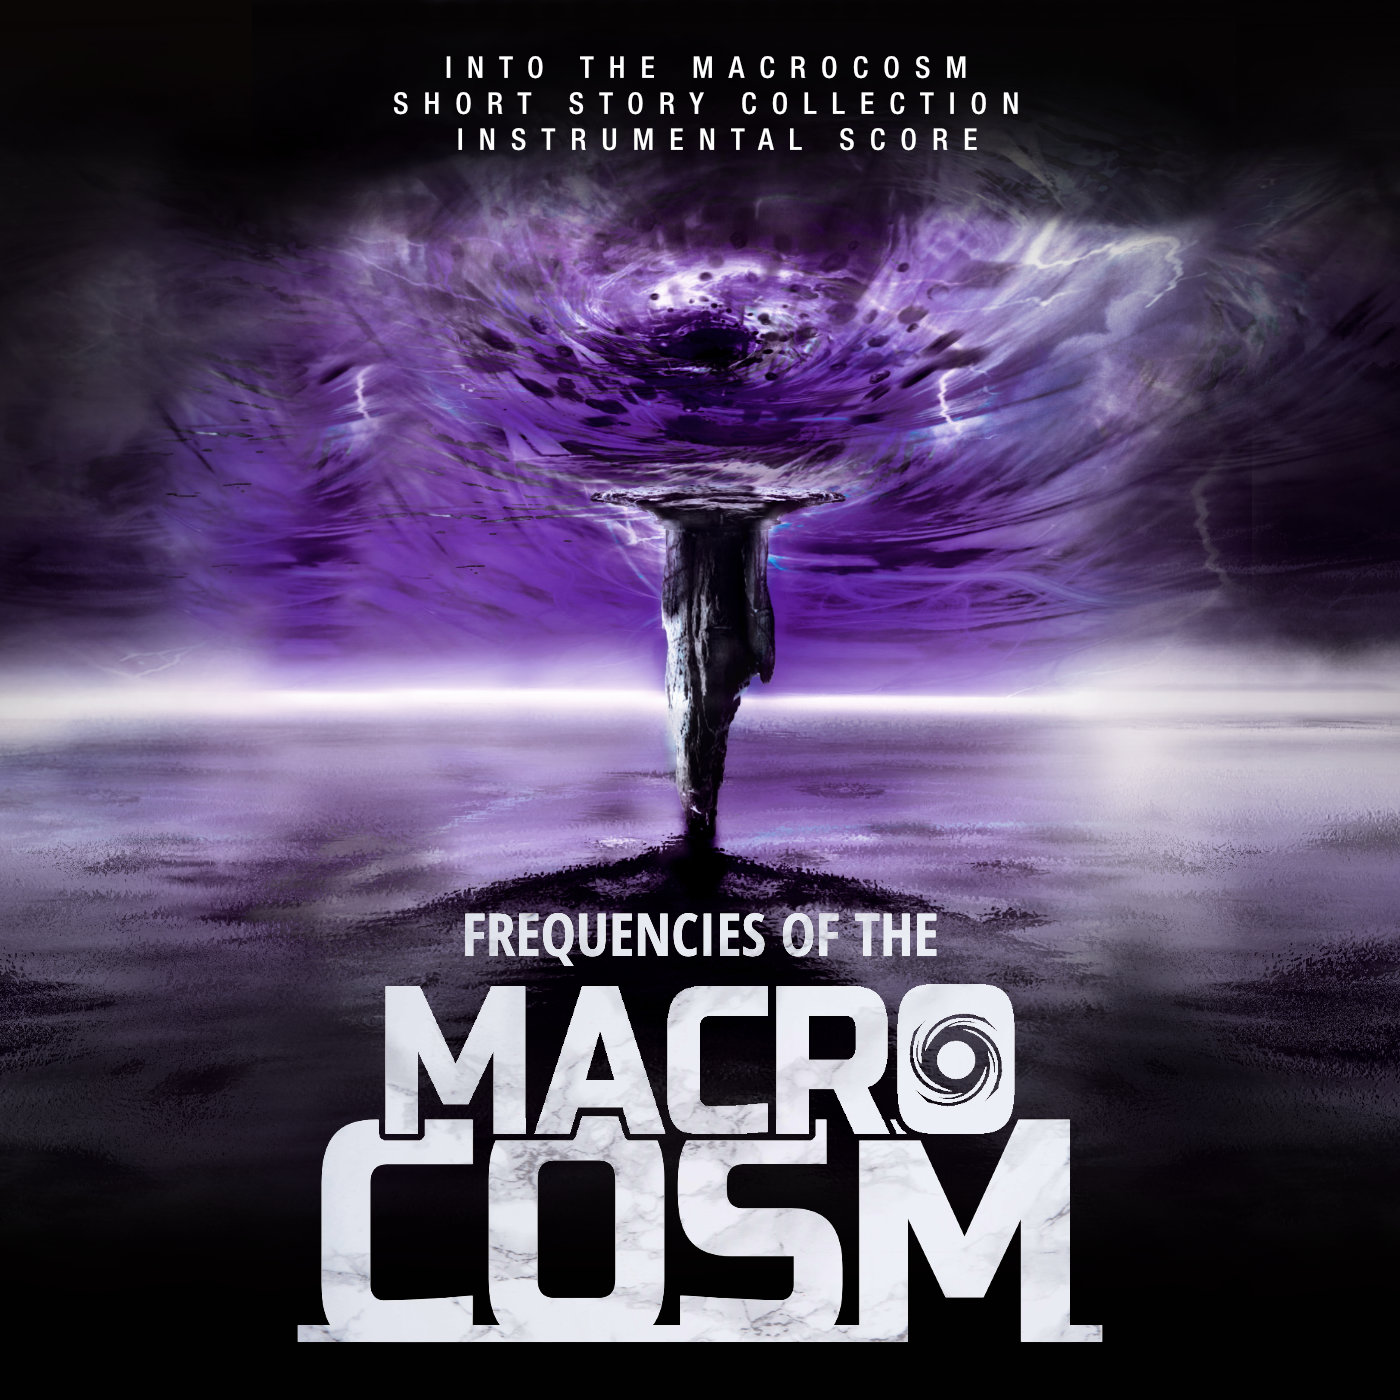 Into the Macrocosm Novel Score and Editorial Review